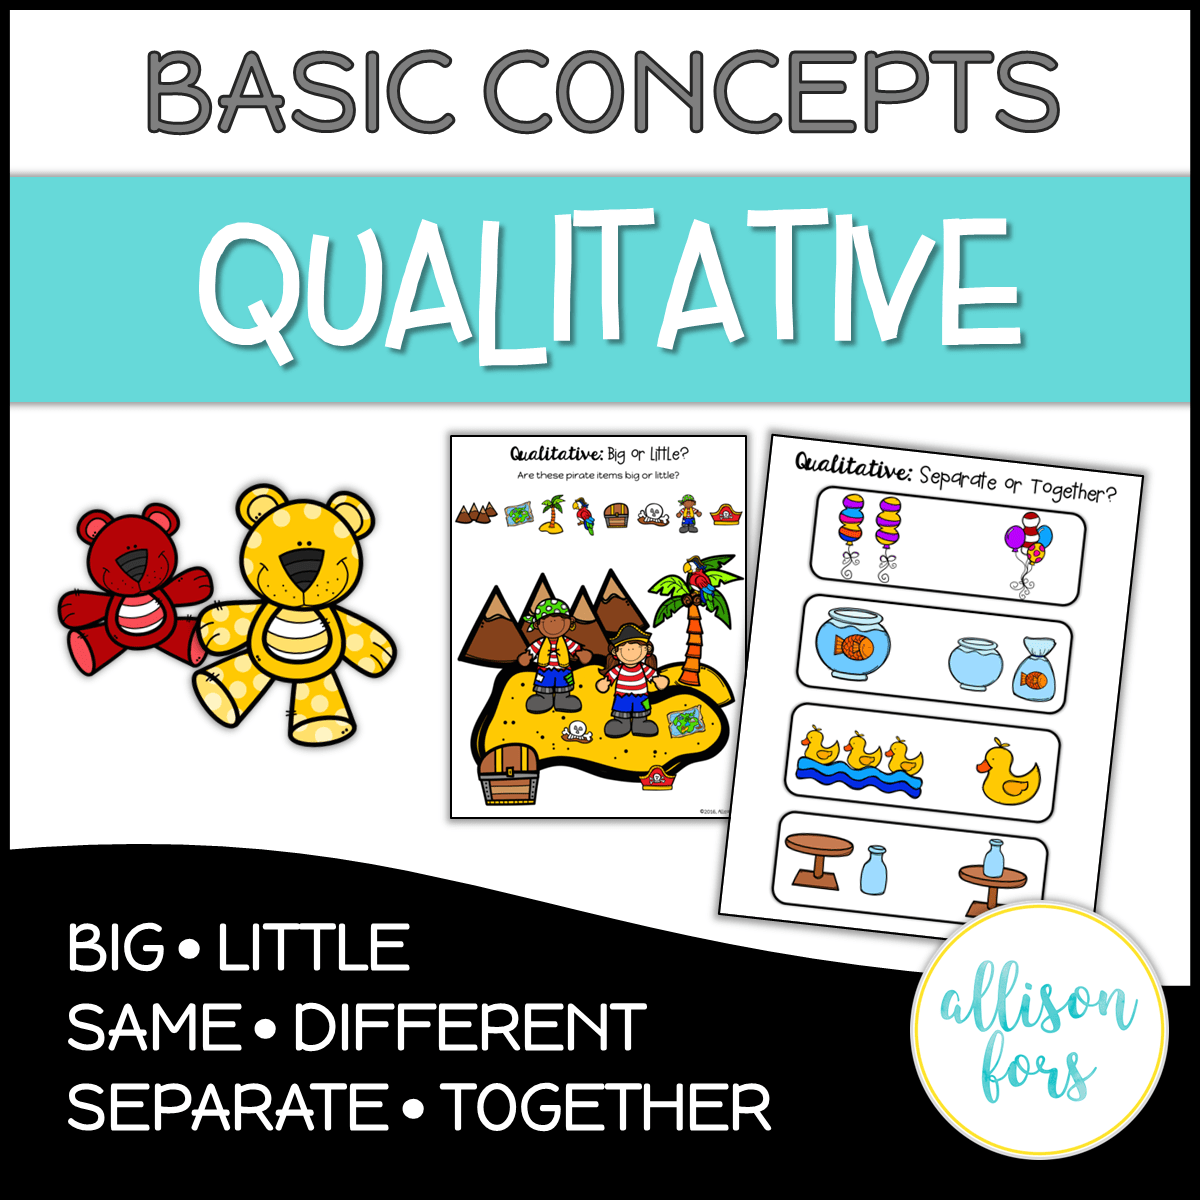 Basic Concepts Qualitative Concepts No Prep